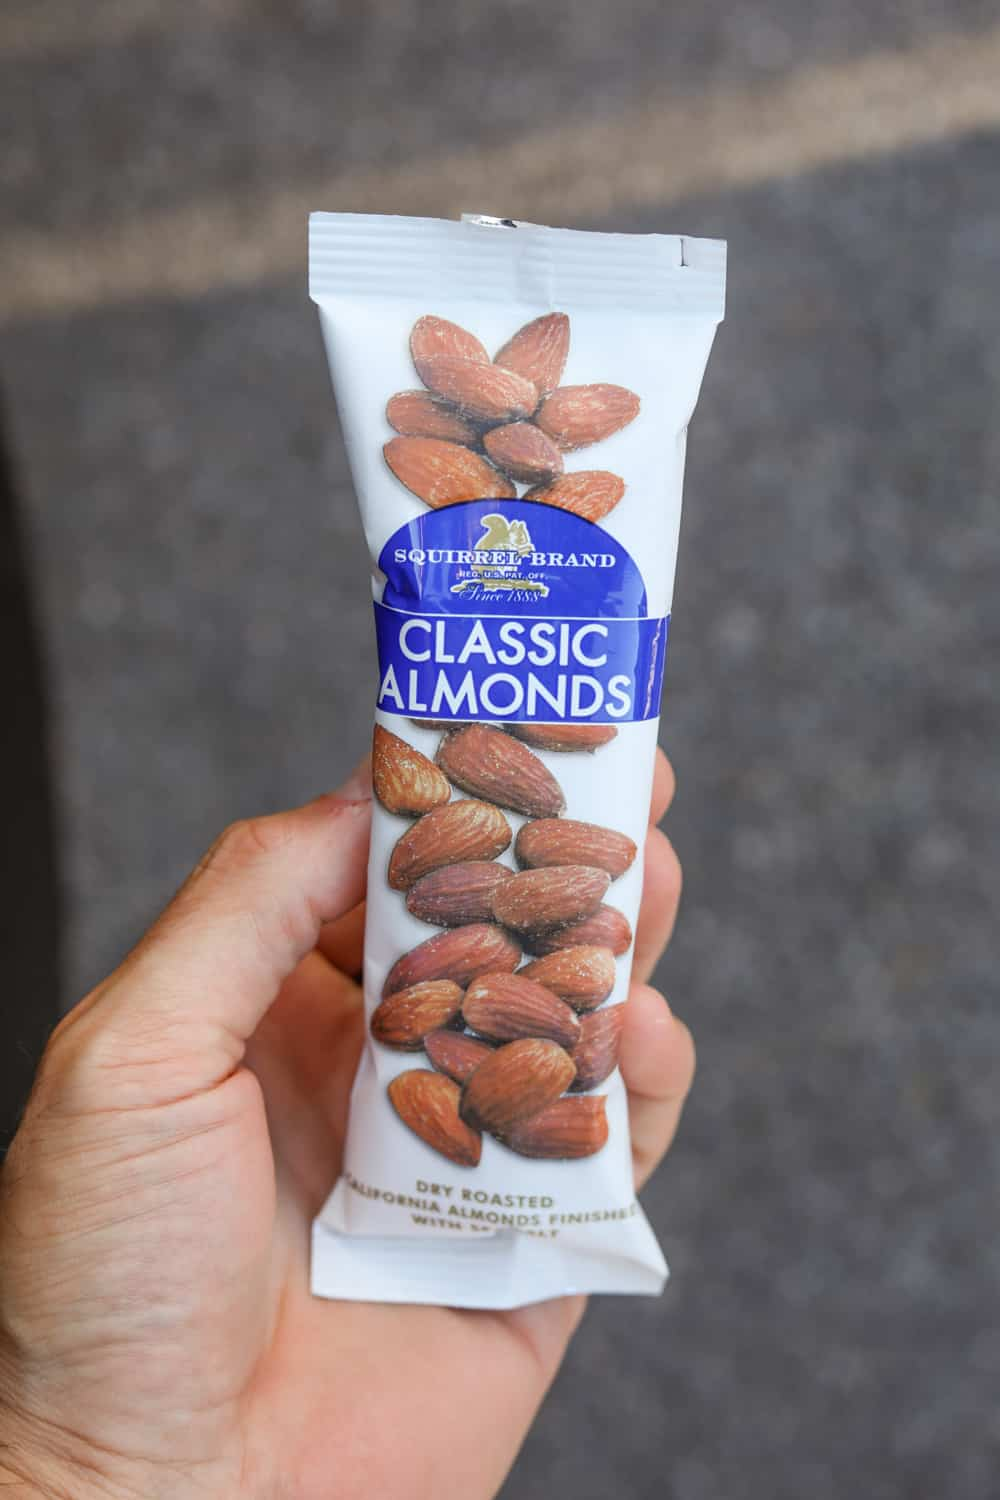 A hand holding a package of almonds.